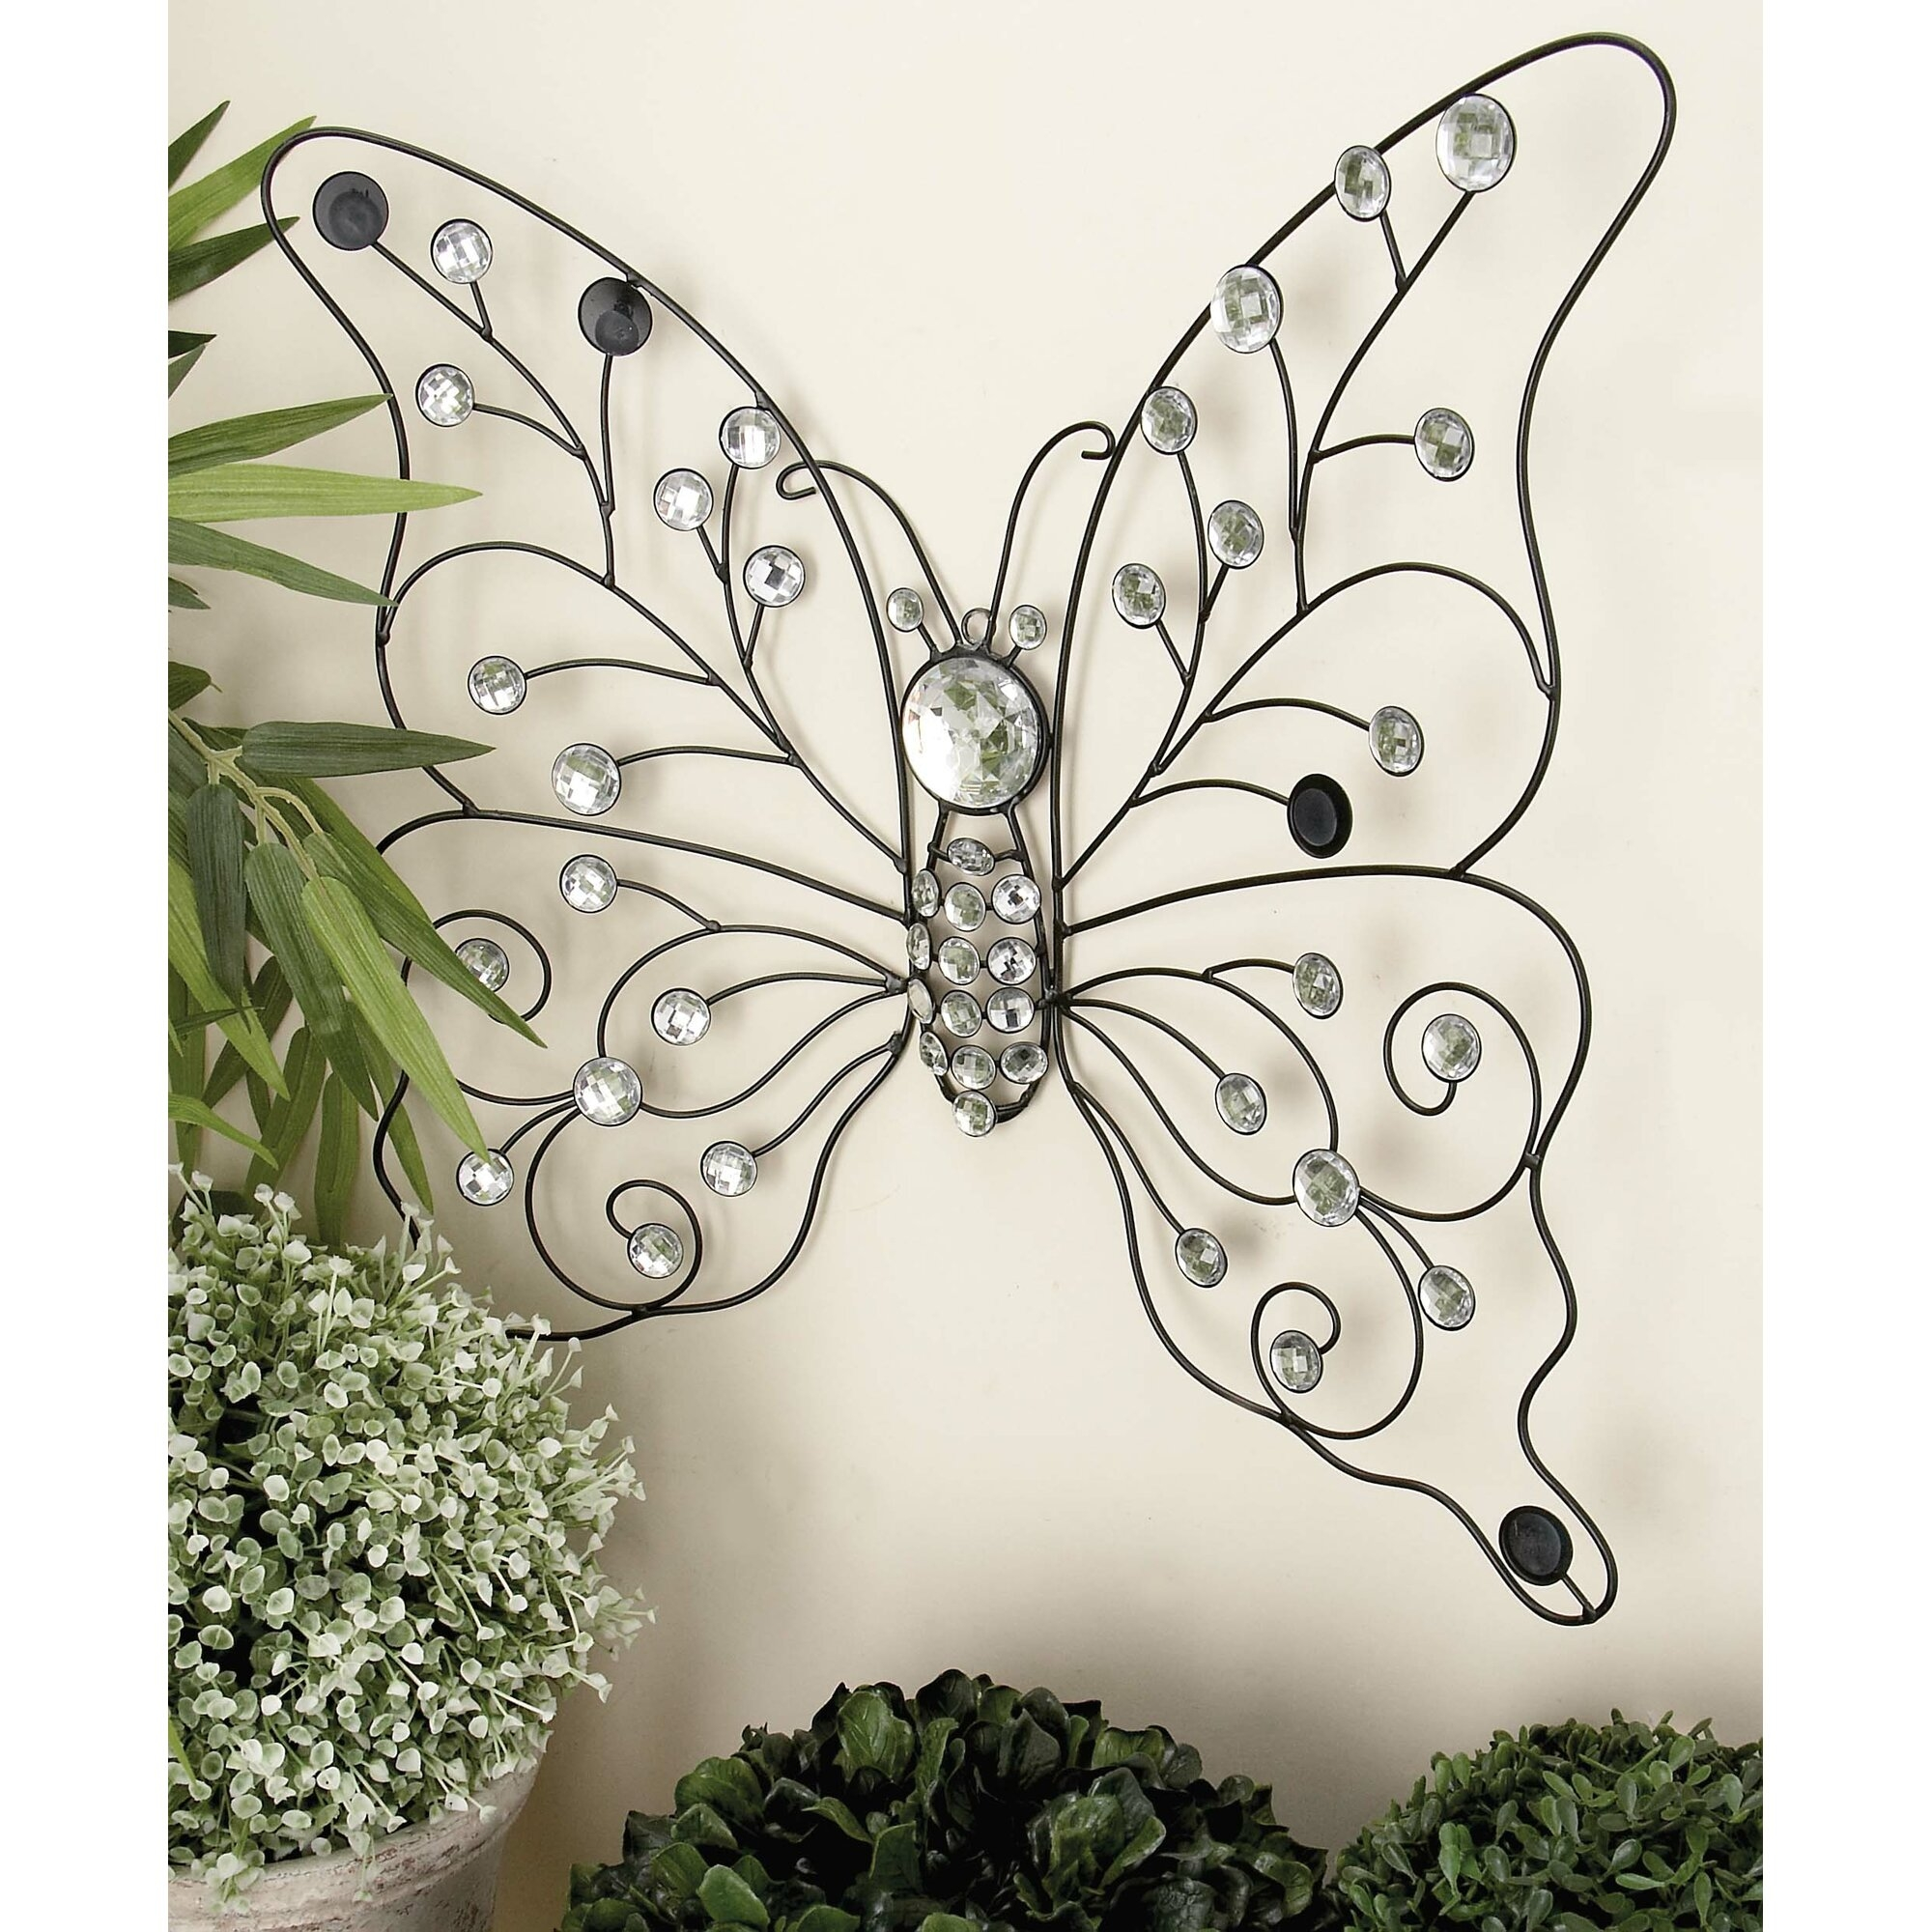 50 Metal Erfly Wall Decor You Ll